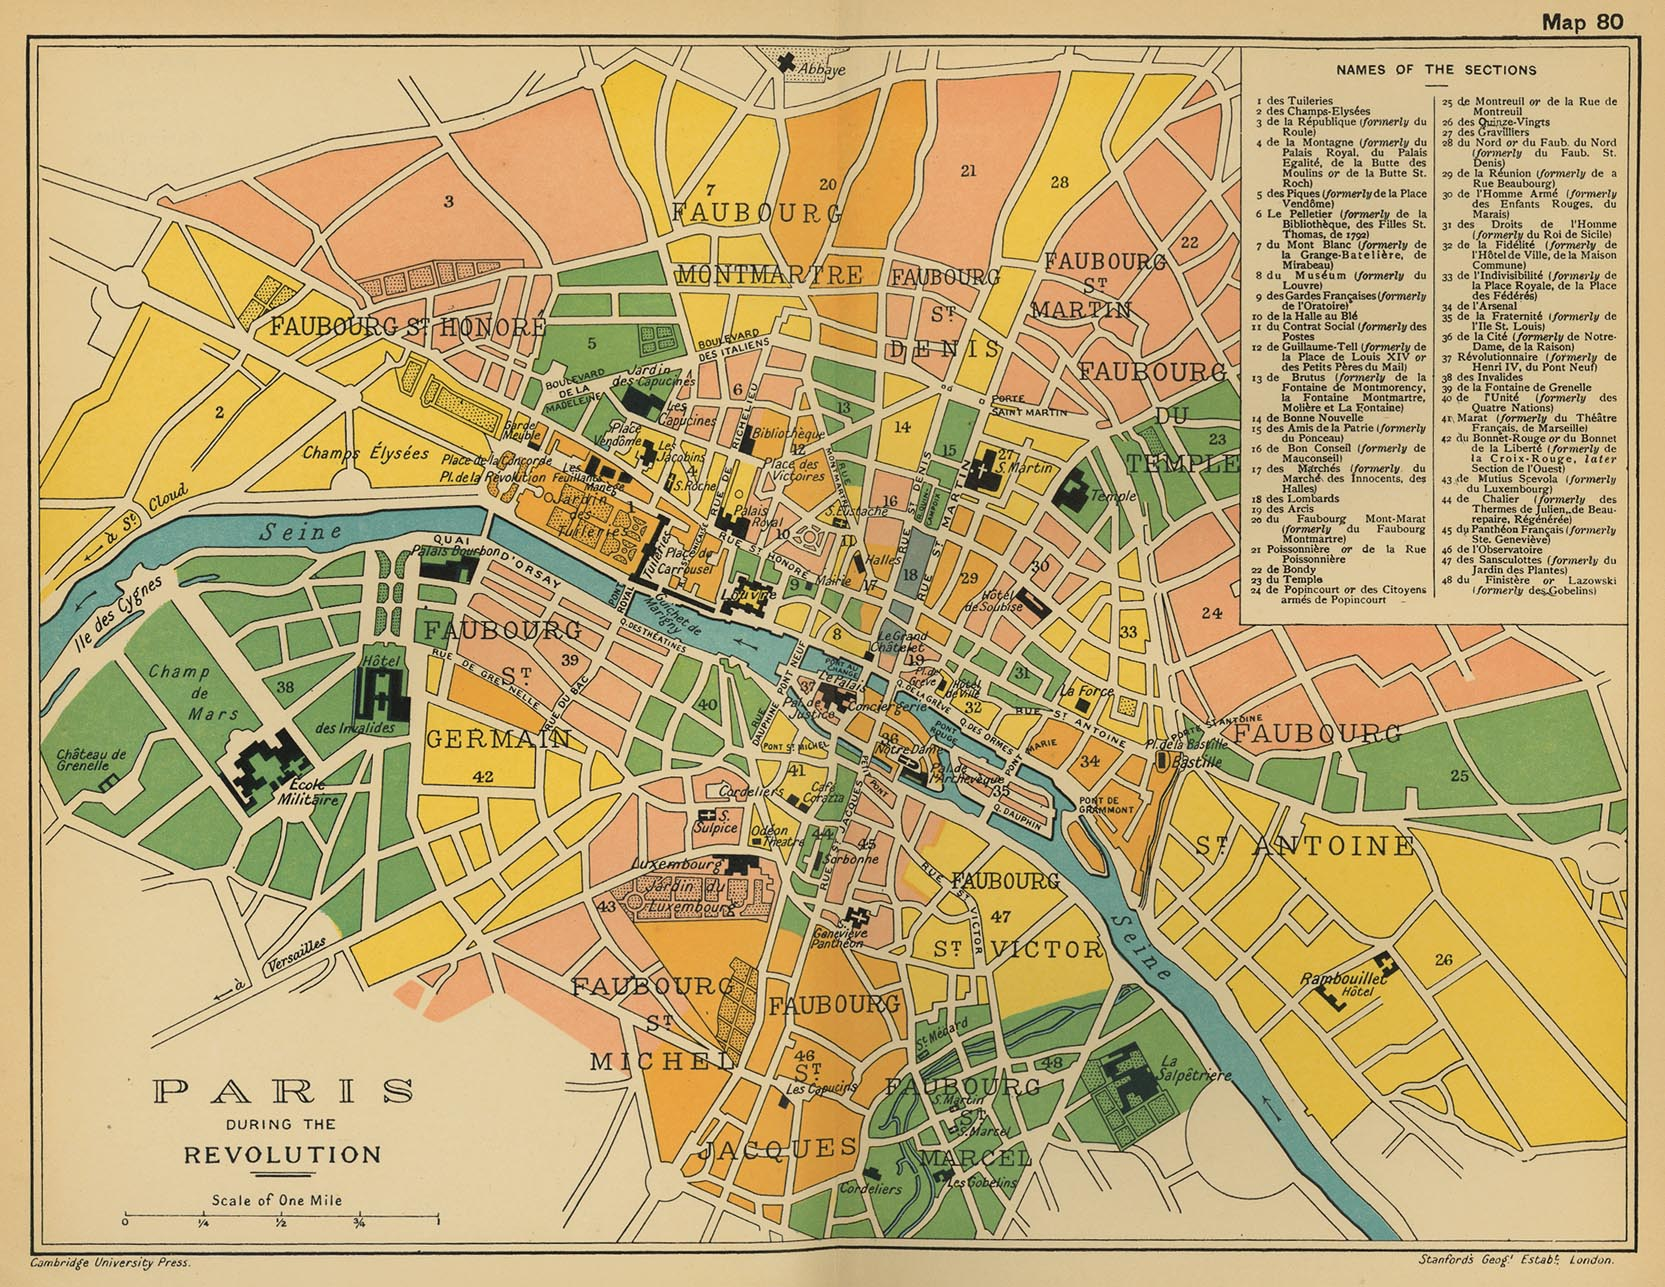 Map of Paris during the Revolution